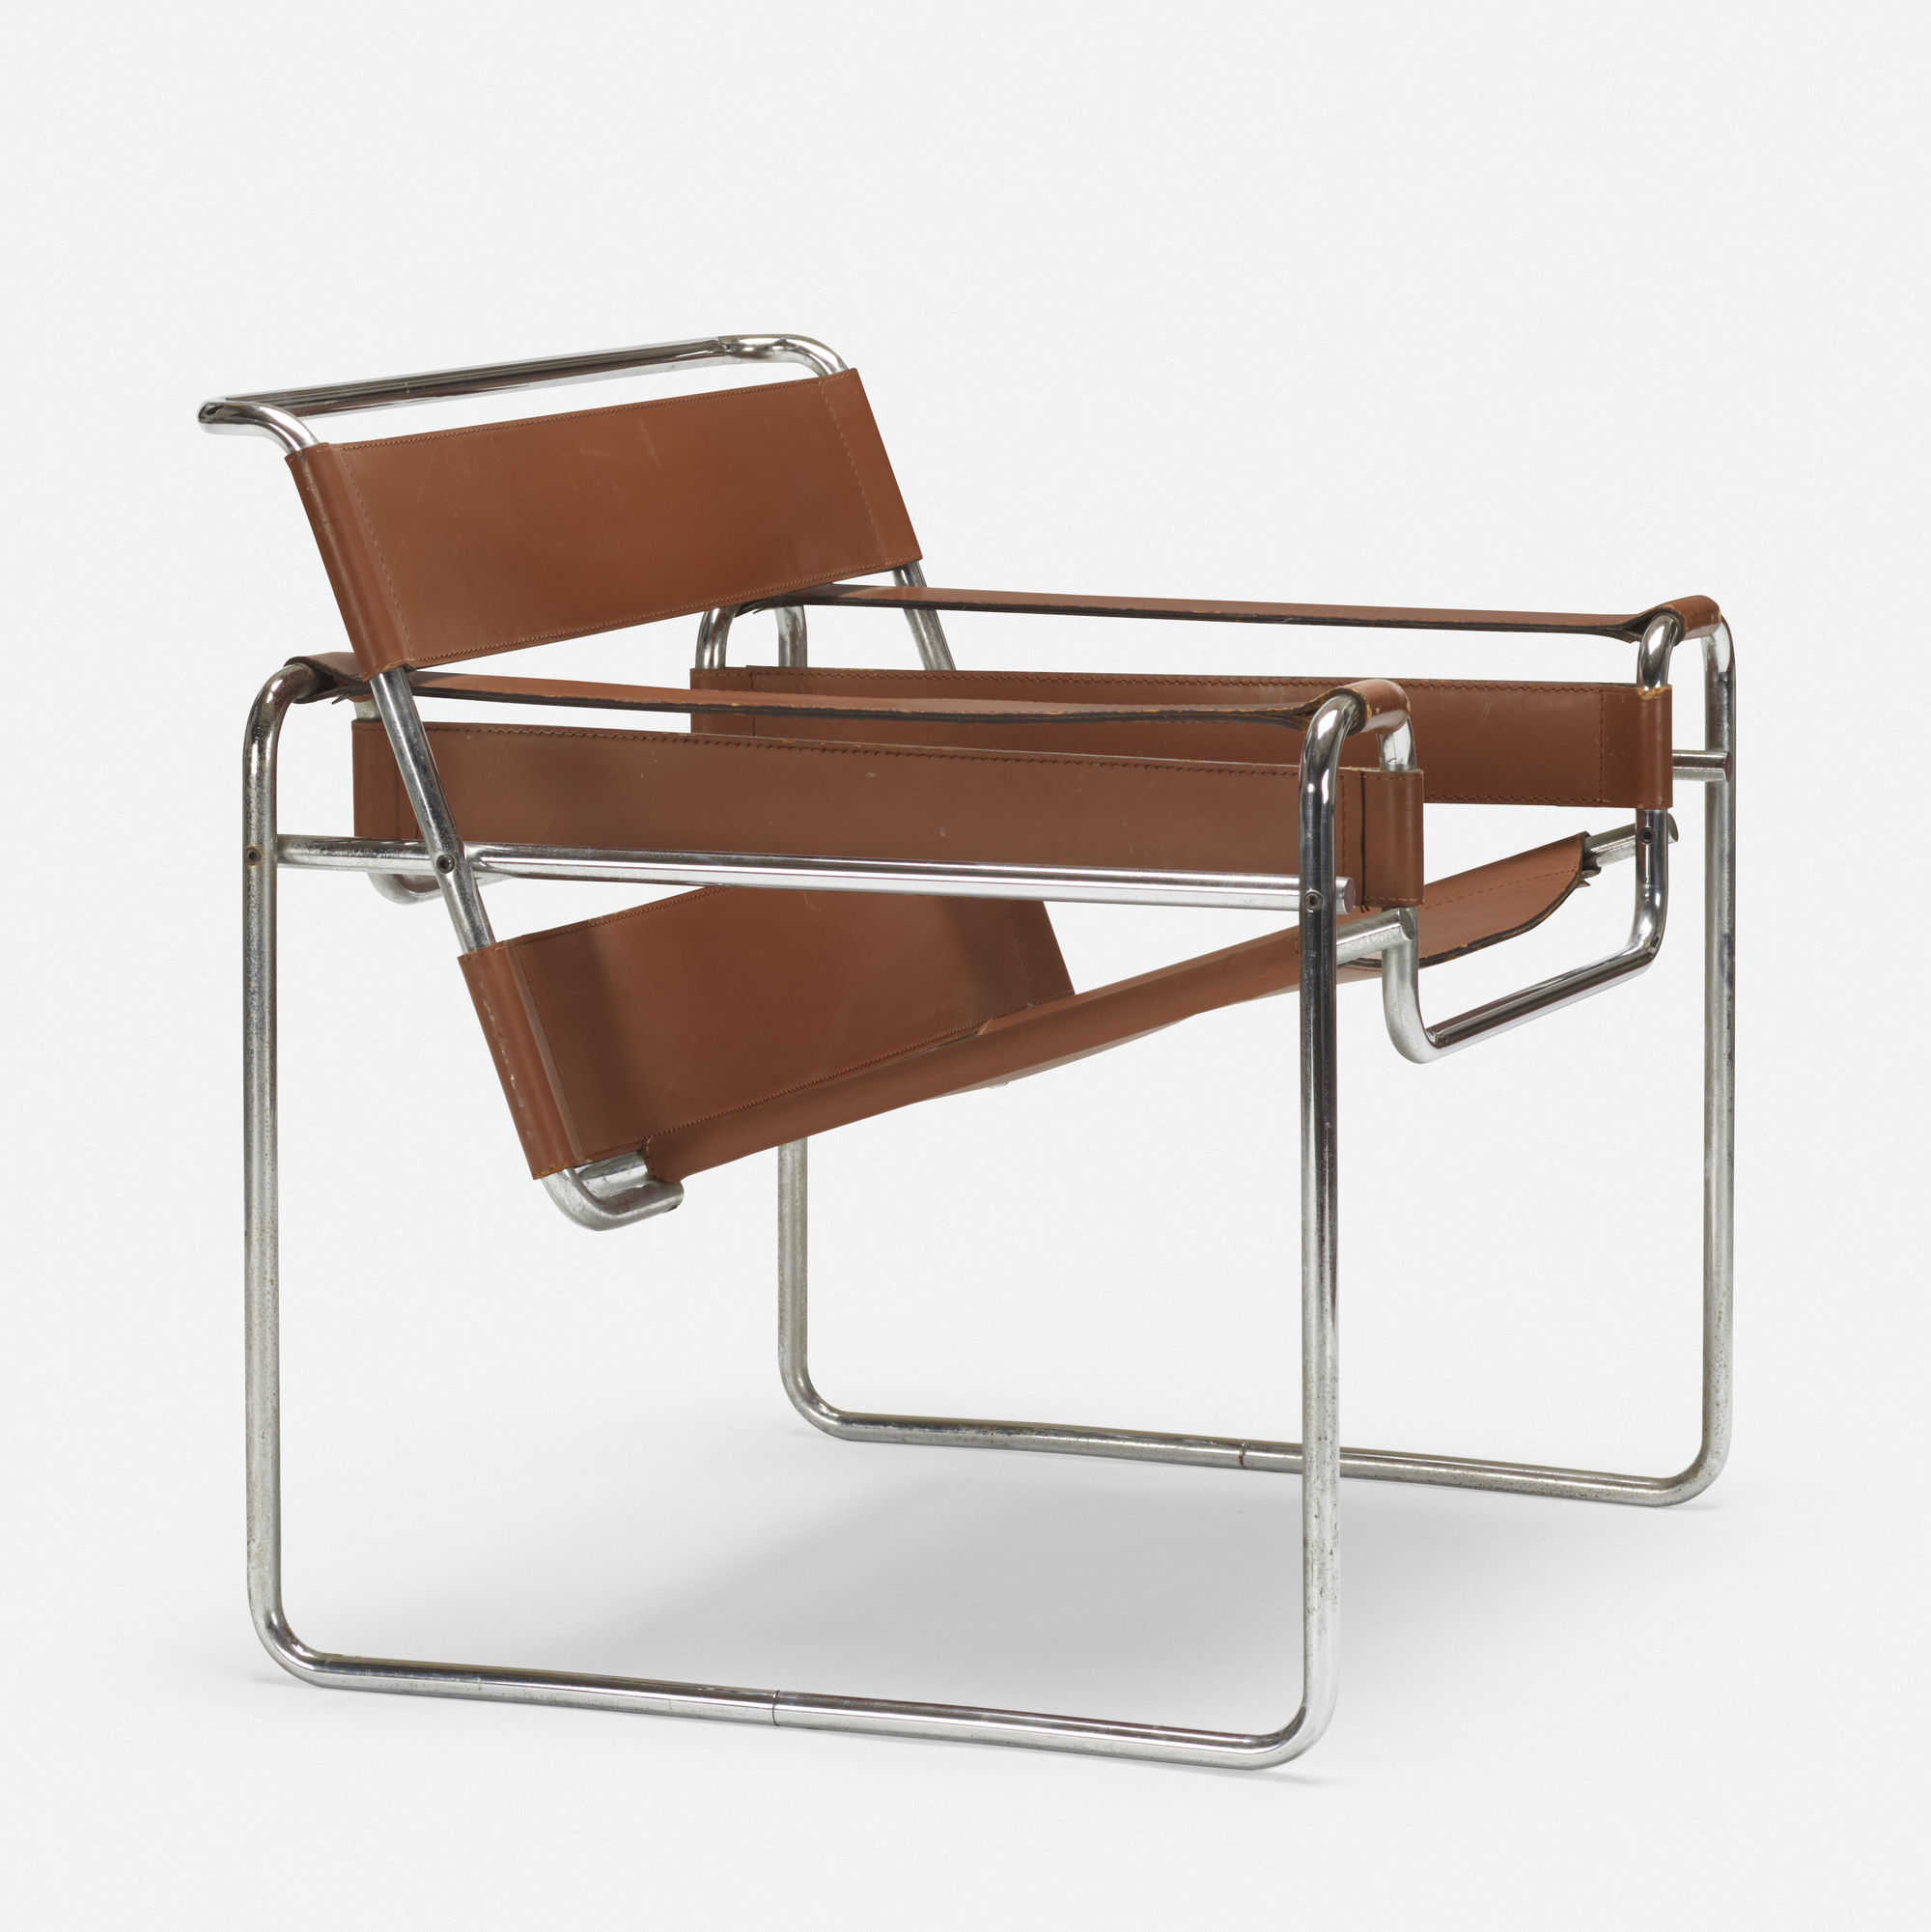 Marcel Breuer 158: Marcel Breuer, Wassily Chair < The Collection Of John M. Hall, 10 September 2020 < Auctions | Wright: Auctions Of Art And Design